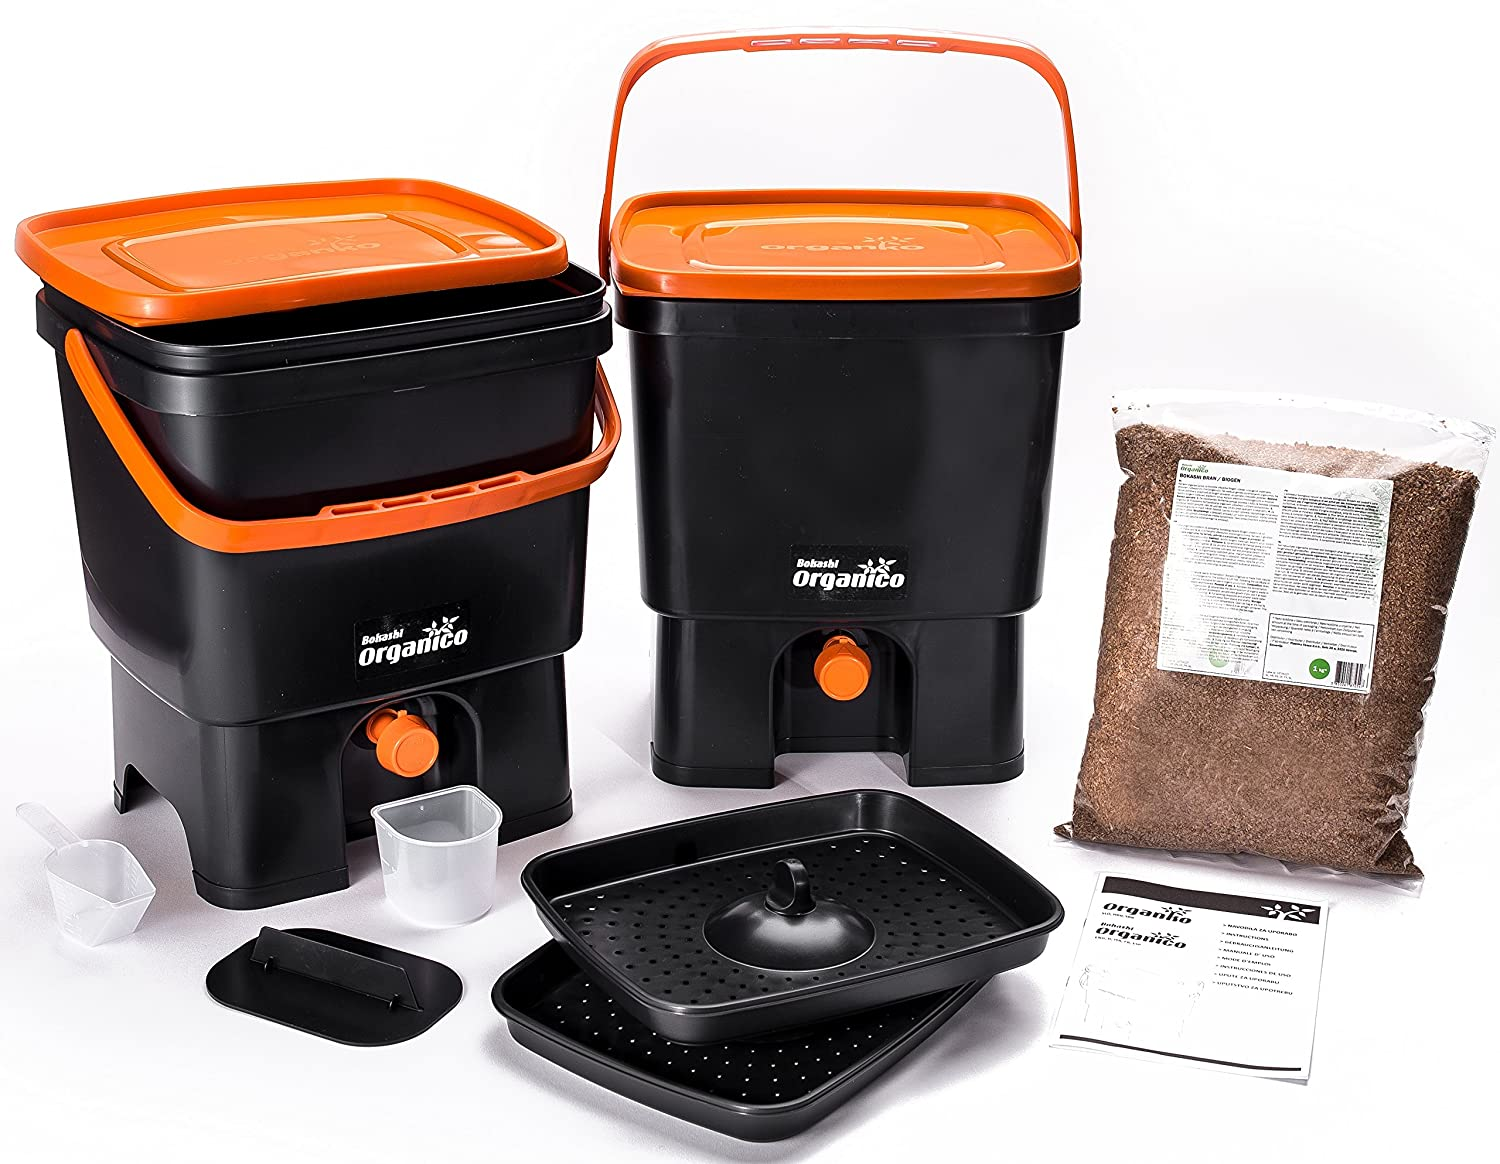 Bokashi Organico Dual System 2x3.5 gallon Buckets with active Bran and Accessories- Sustainable and Innovative Organic Waste Bin - Composter Kit (Black/Green) Plastika Skaza d.o.o.